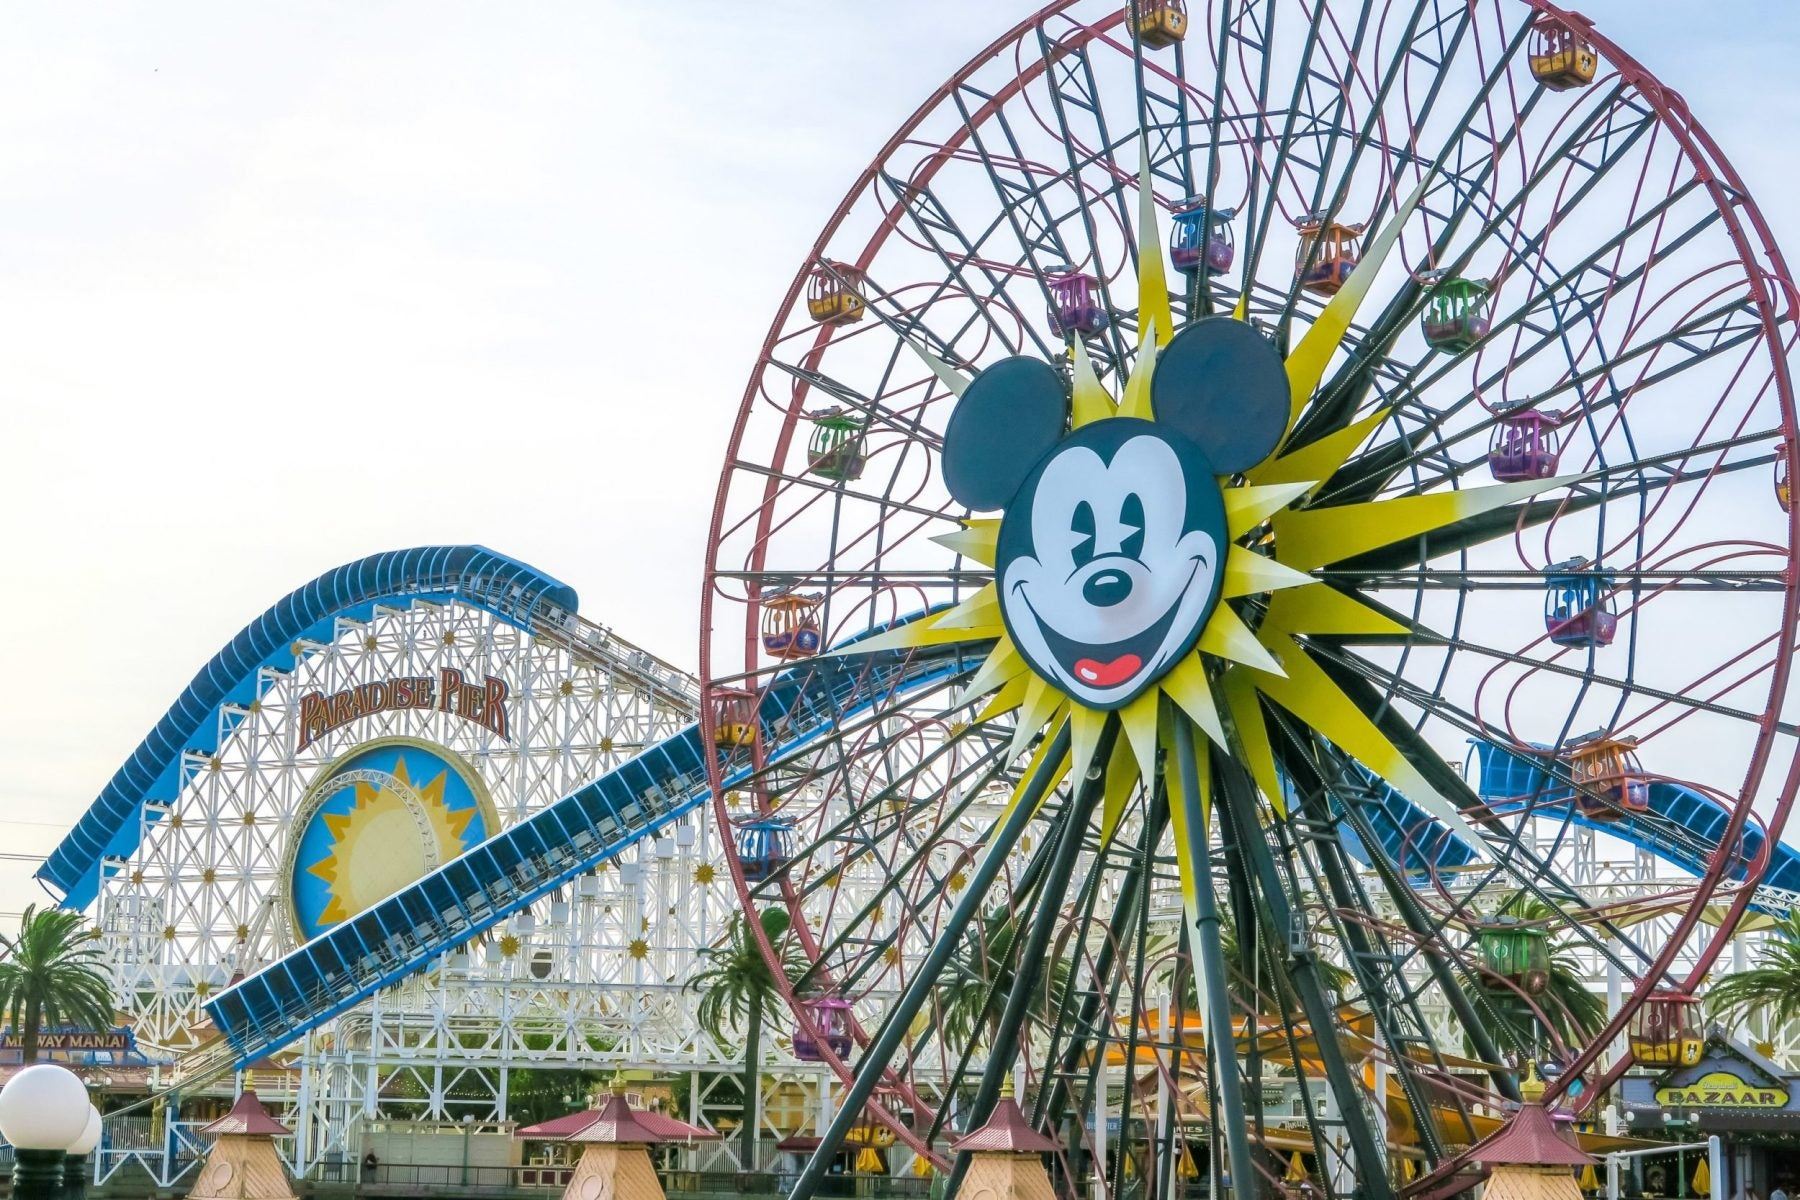 News Flash! New Disneyland Pricing in Effect Today